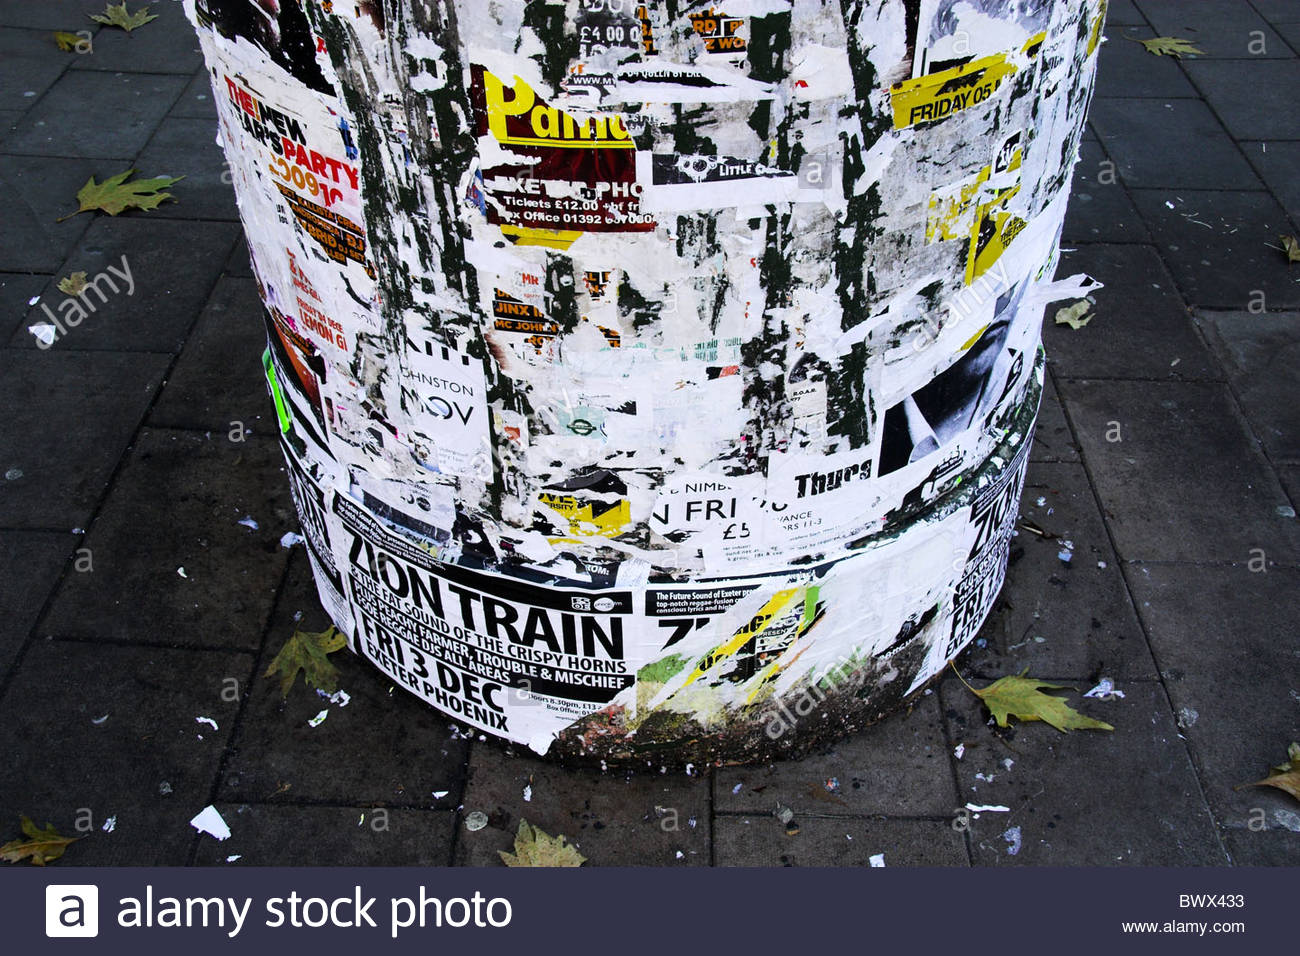 Old bill posters on a round poster column. UK. - Stock Image